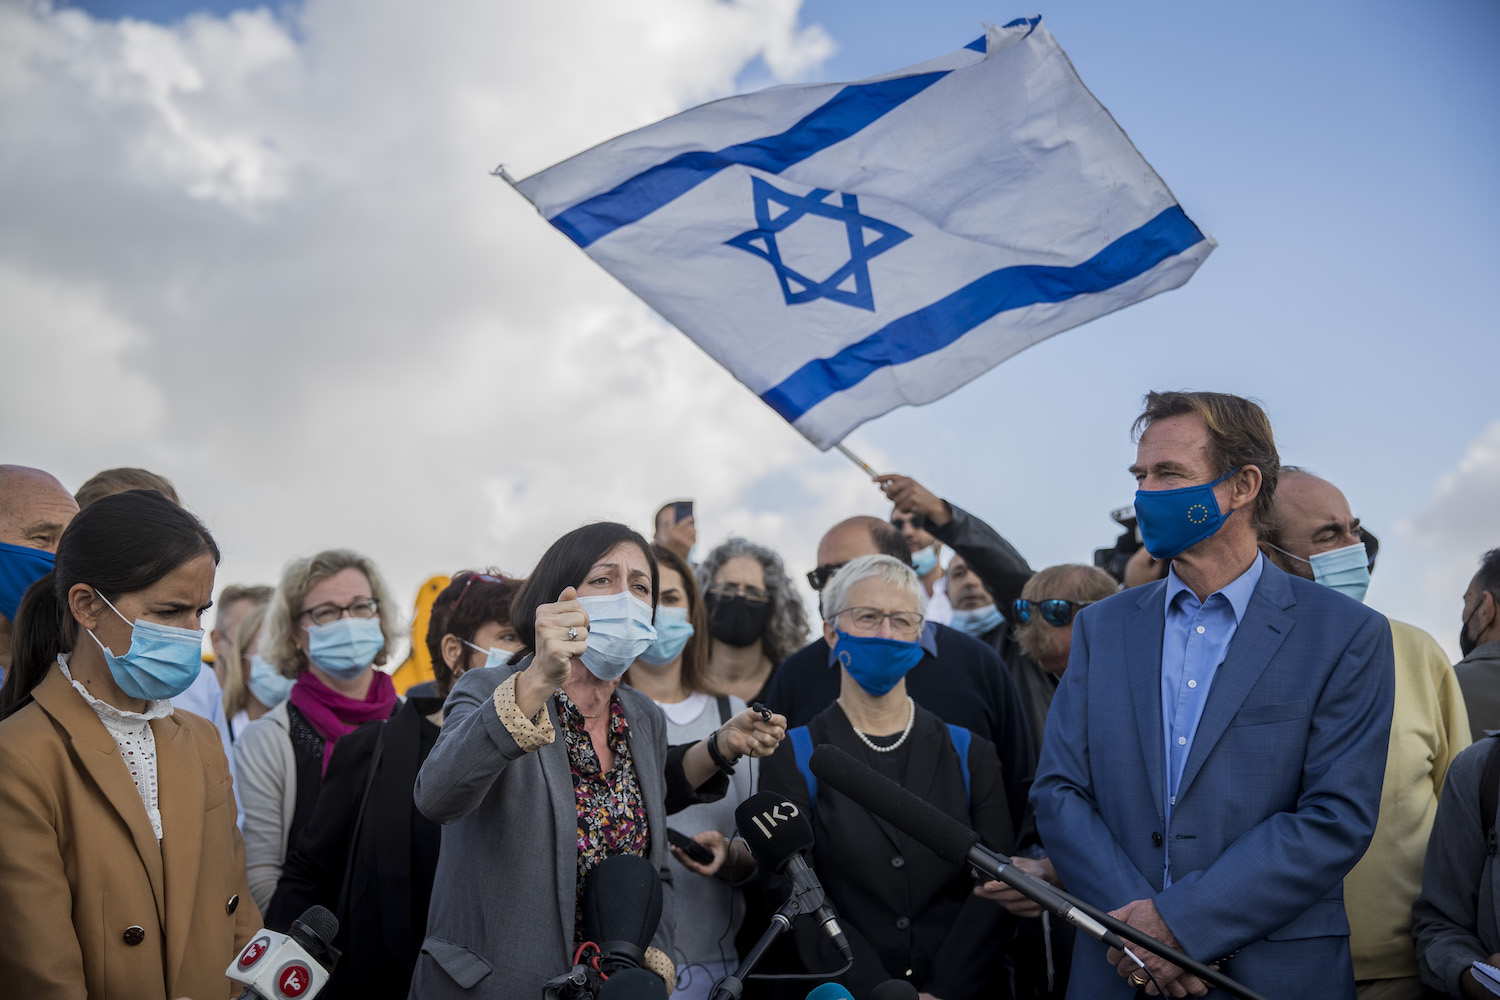 Right-wing Israelis hold a demonstration as European Union representatives deliver a press conference in the Jewish settlement neighborhood of Givat HaMatos, East Jerusalem, November 16, 2020. (Yonatan Sindel/Flash90)